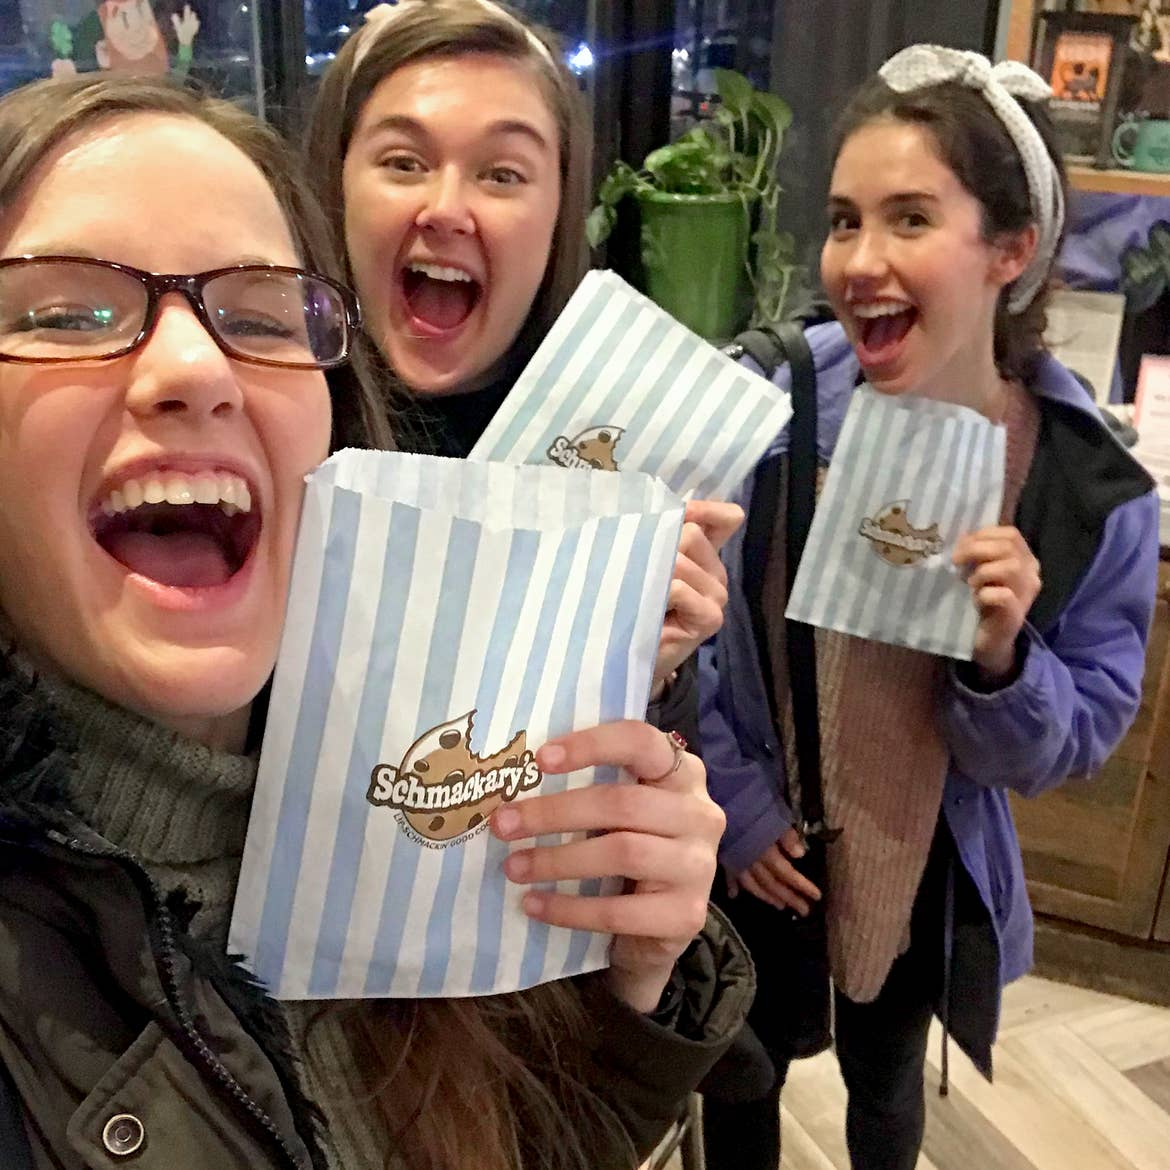 Three caucasian women in winter jackets hold a wax paper with blue and white stripes from 'Schmackary's ' in New York City.